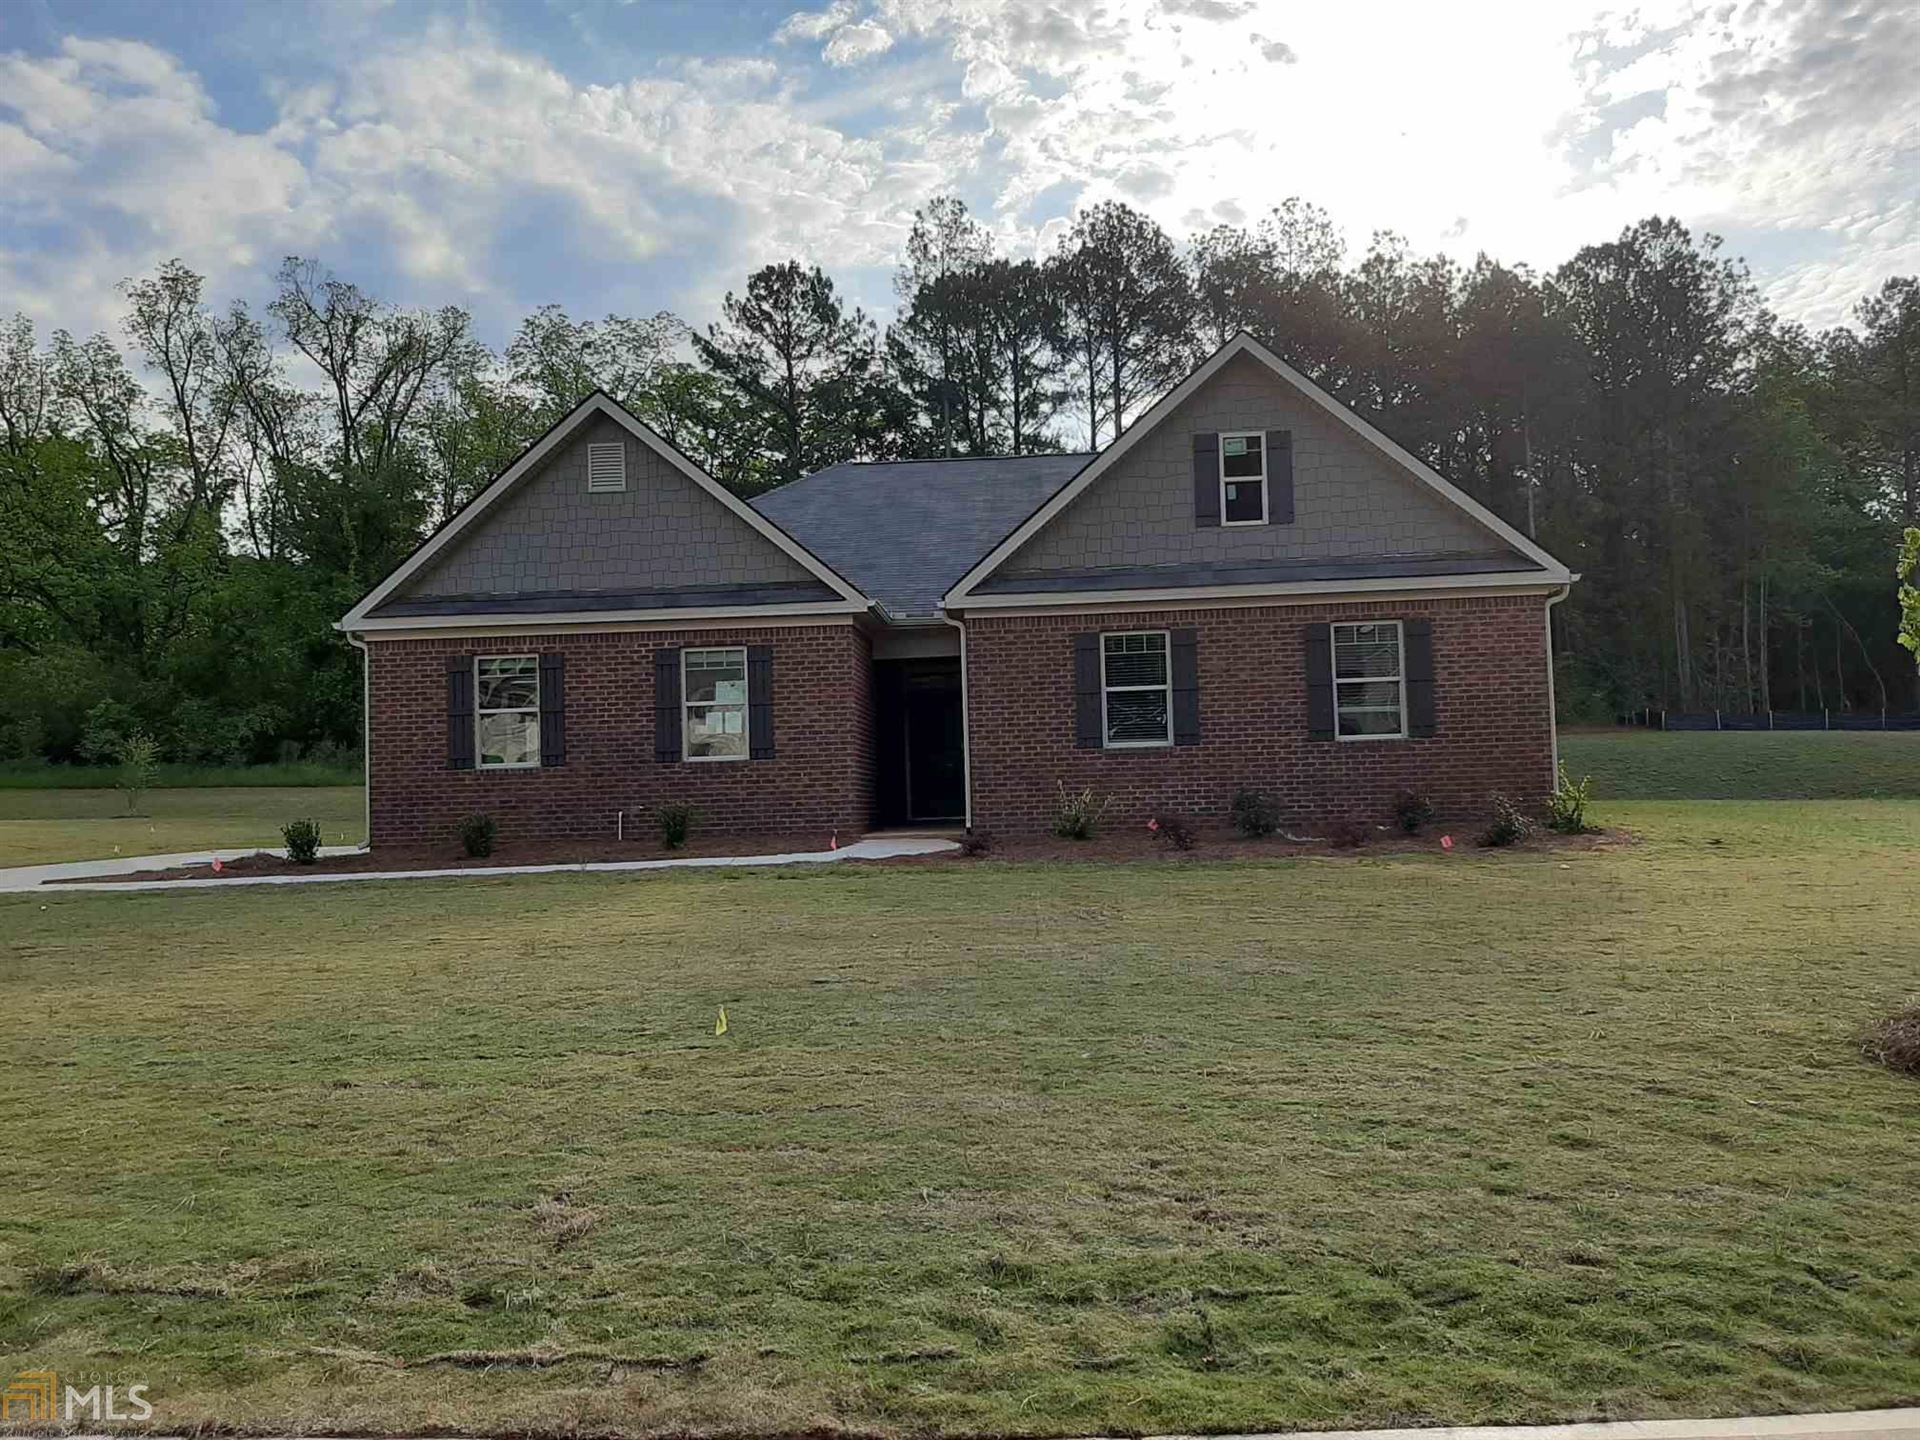 1334 Harlequin Way, Stockbridge, GA 30281 - #: 8773521